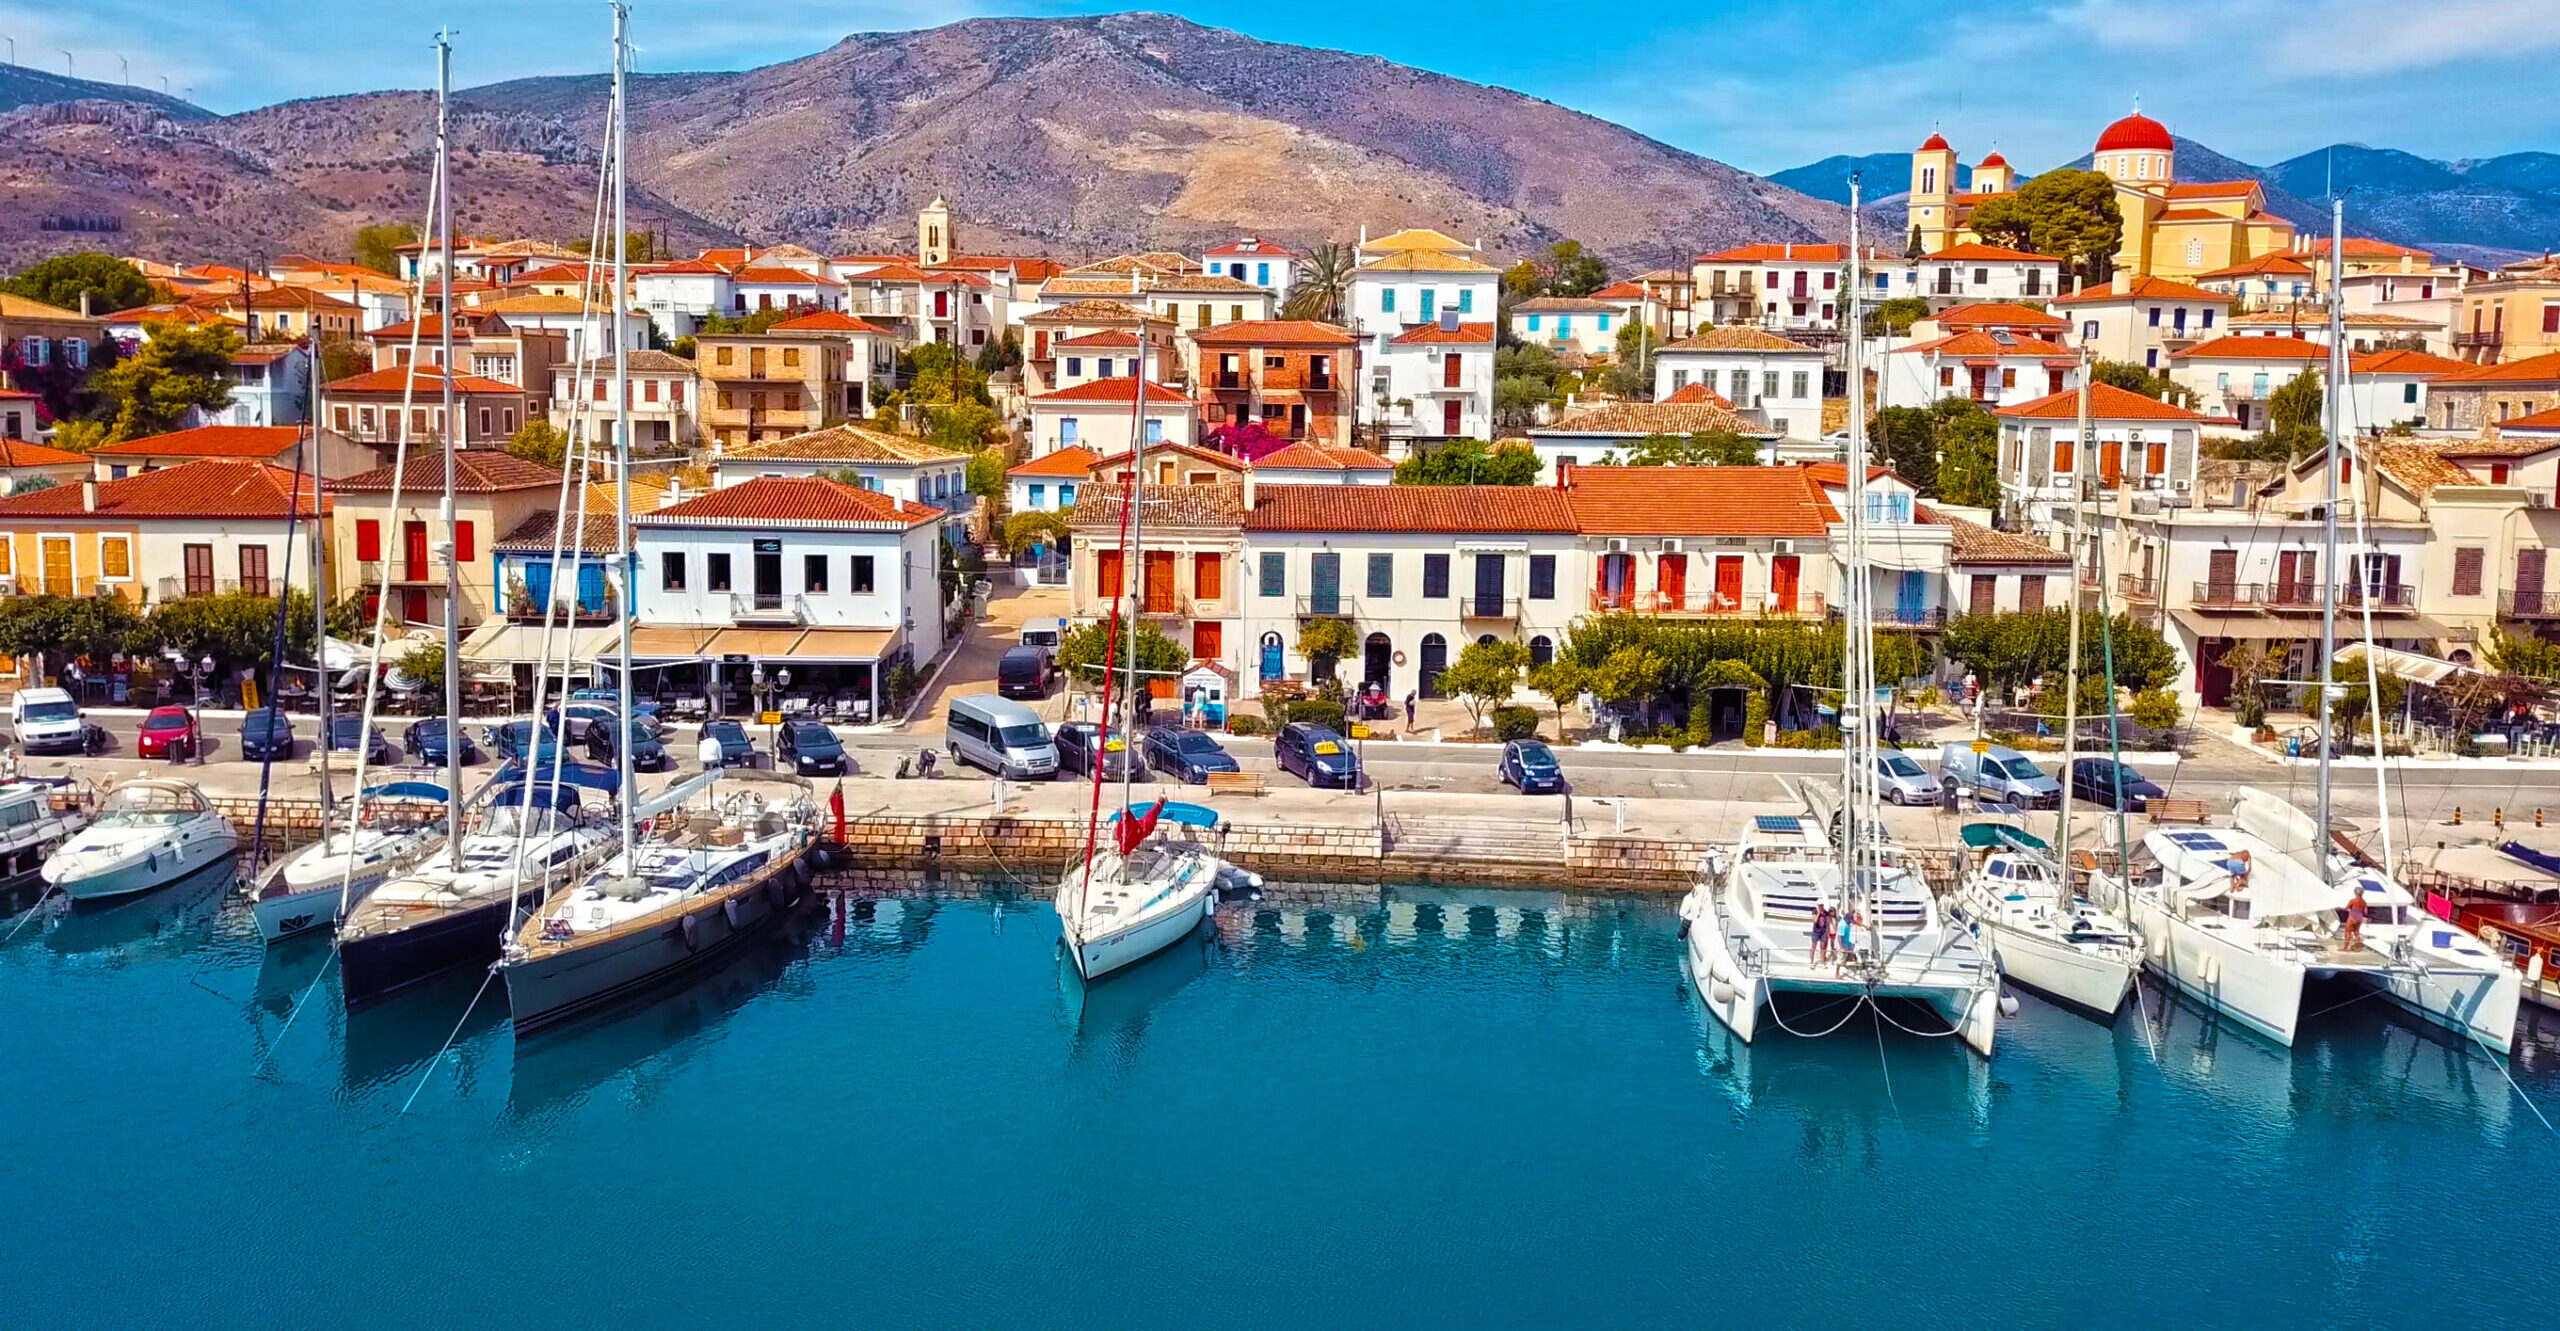 Galaxidi: The destination close to Athens that looks like an island but it is not